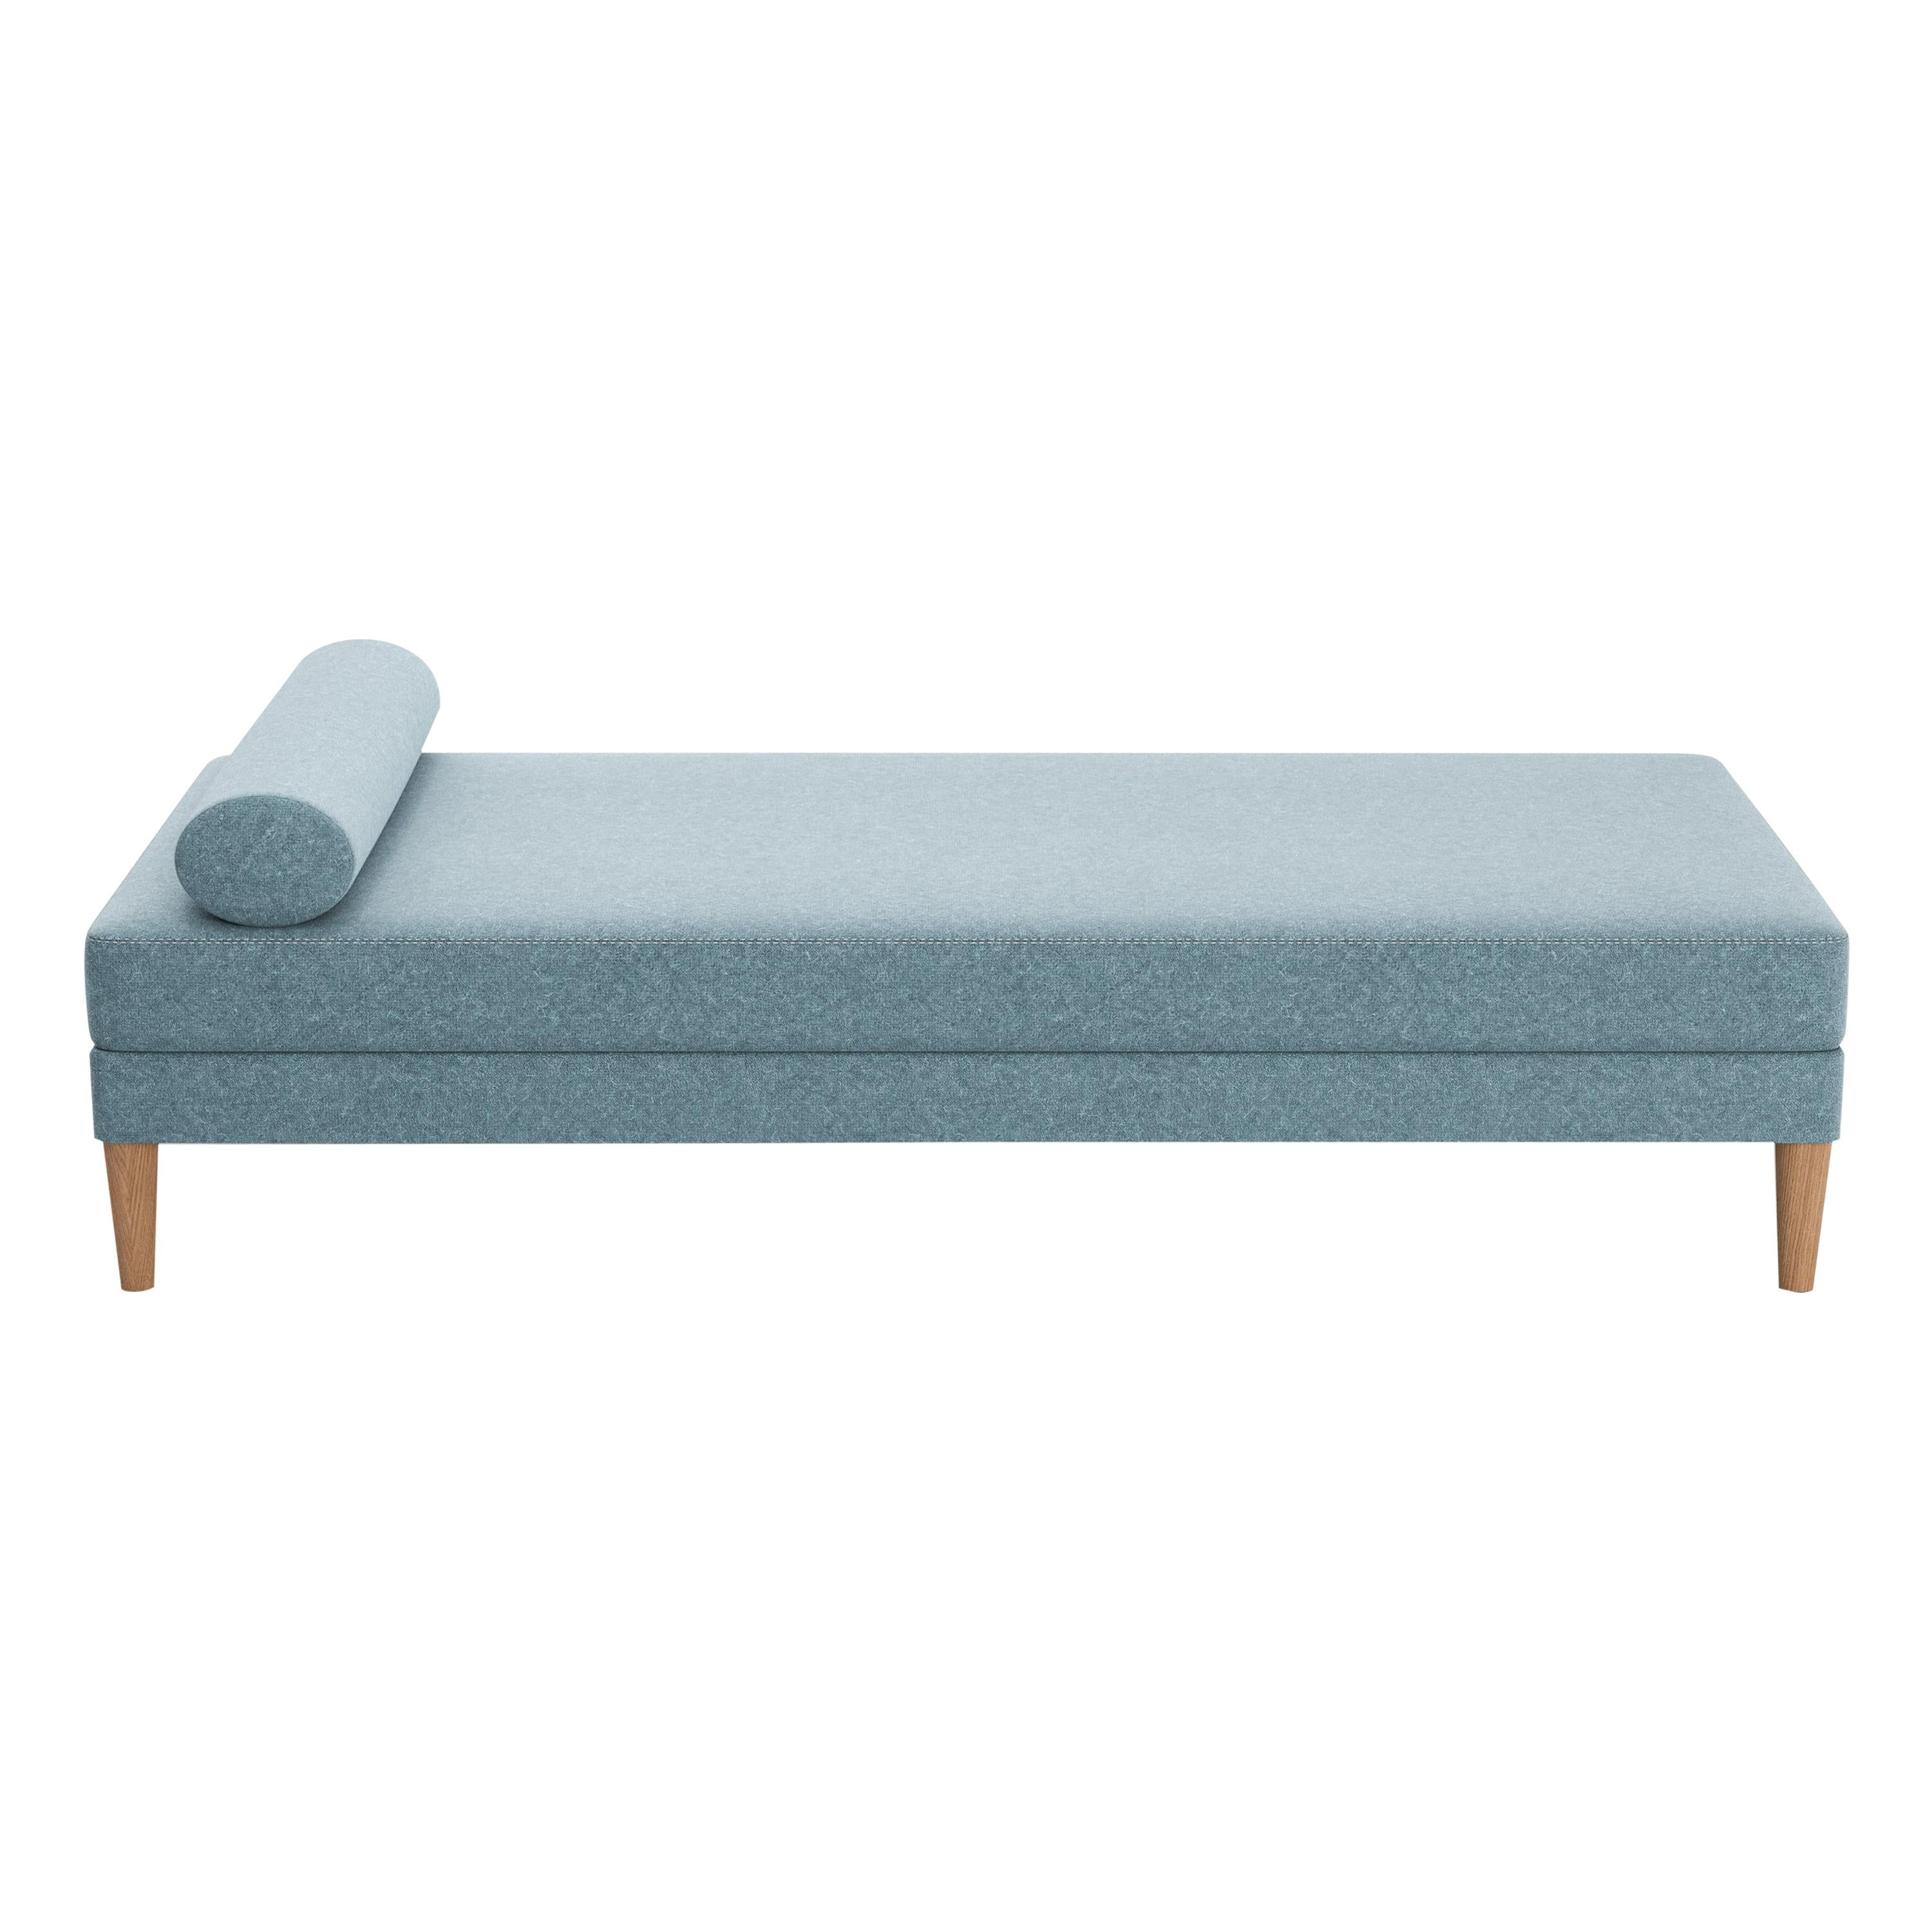 Upholstered Daybed with Bolster and Loose Seat Cushion on Oak Wood Legs